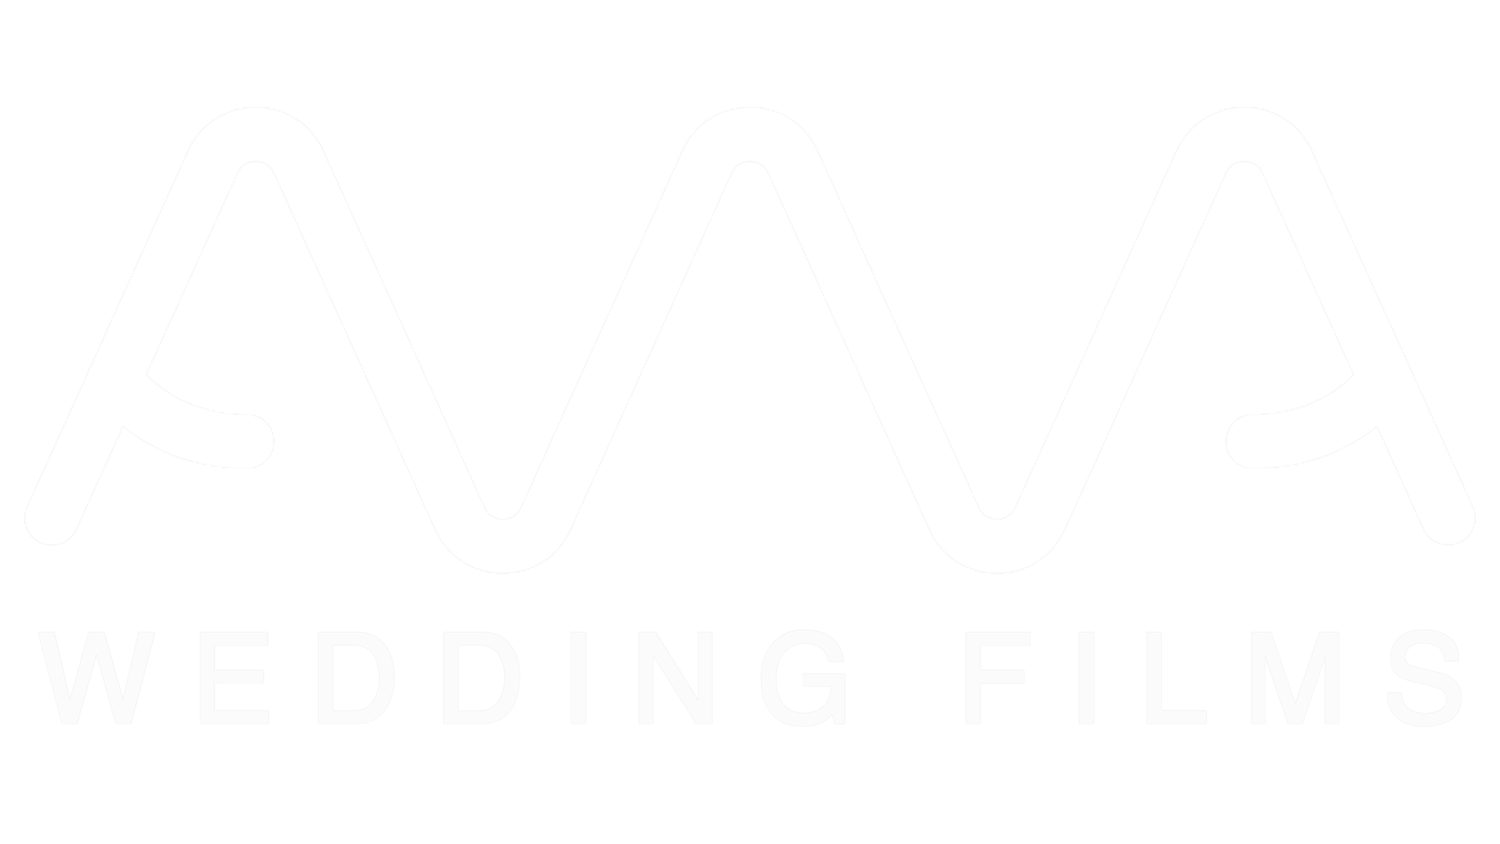 AWA Wedding Films